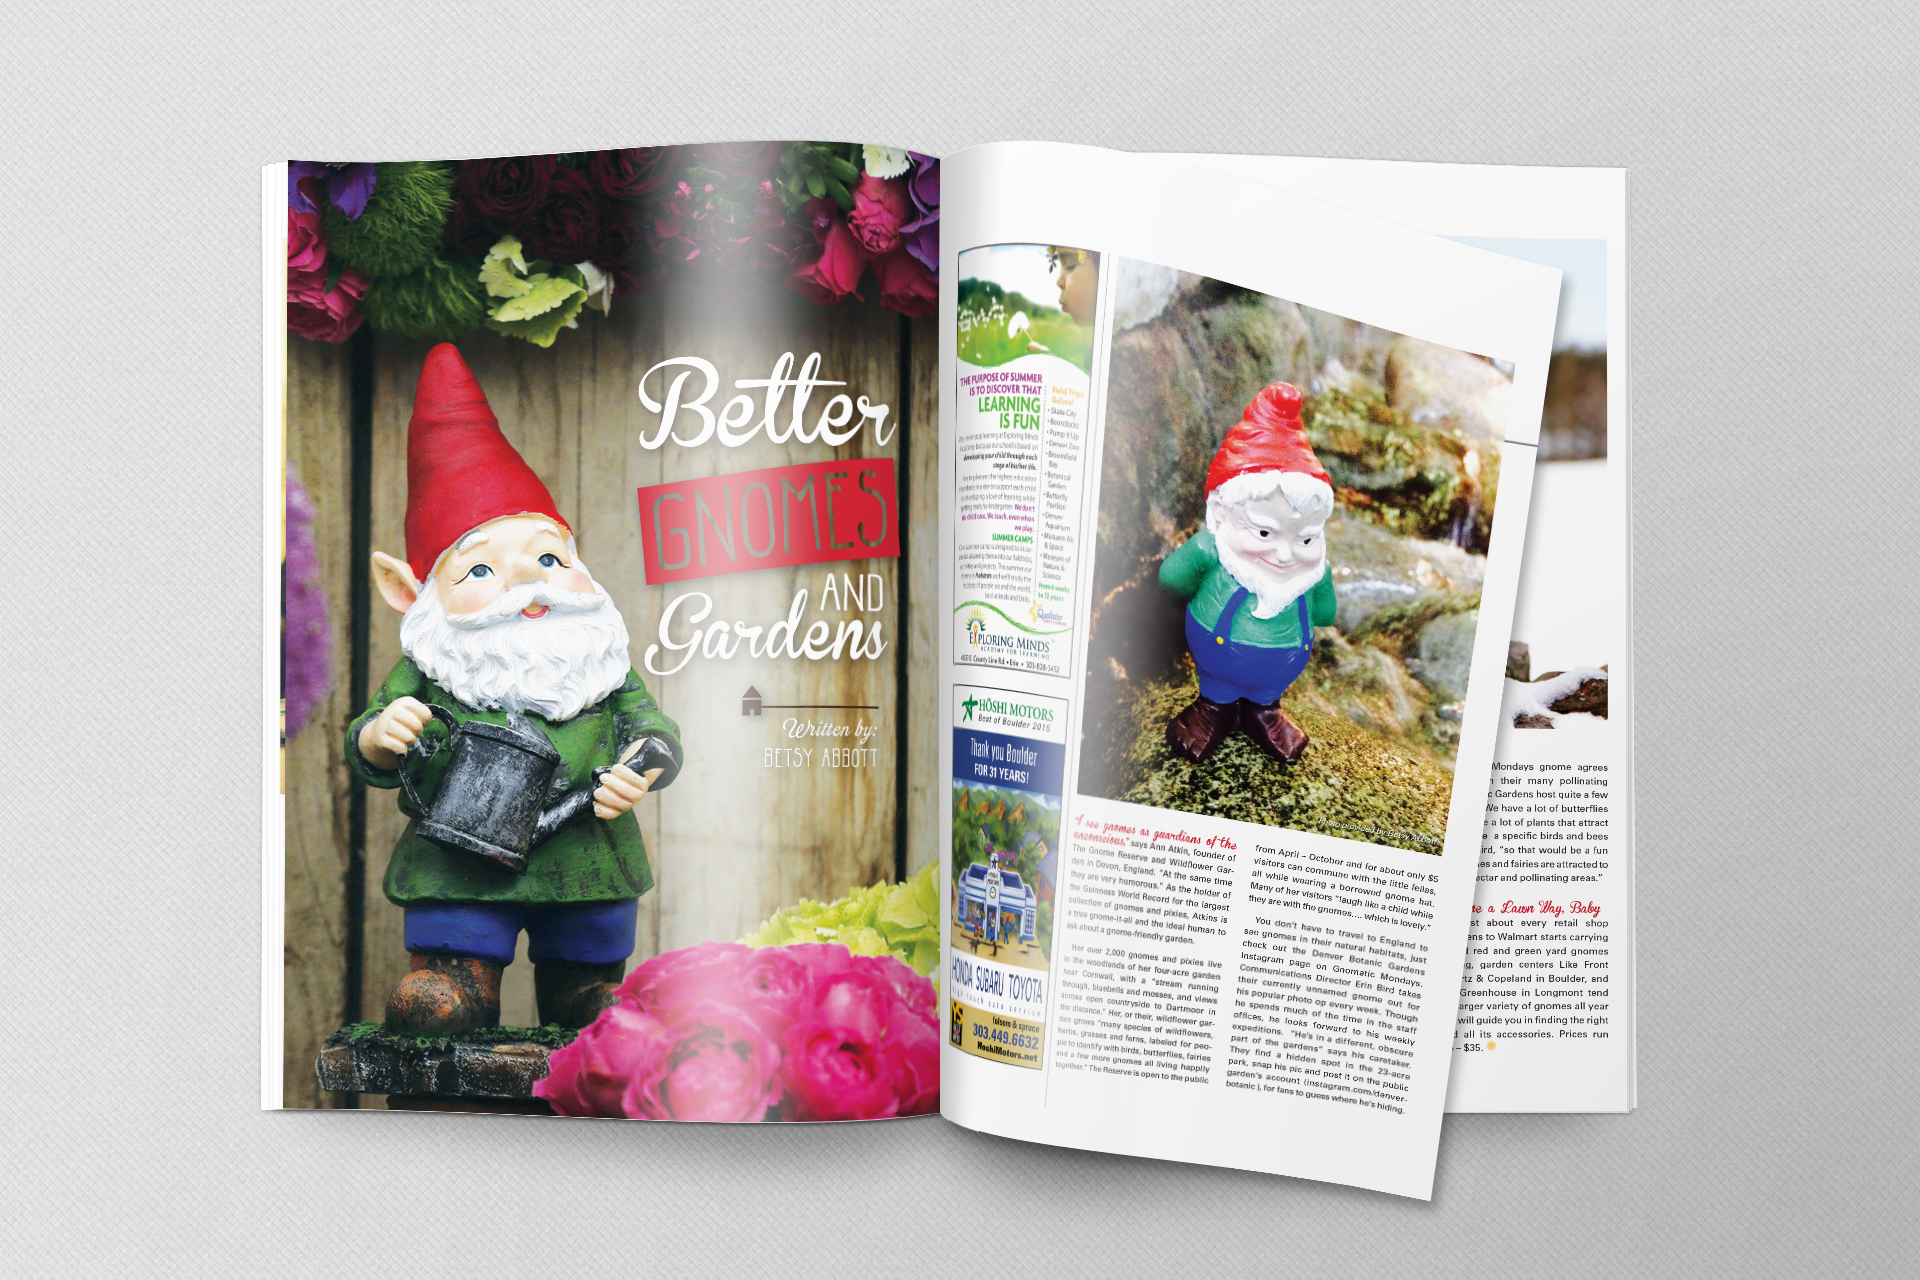 Garden Page Design & Layout